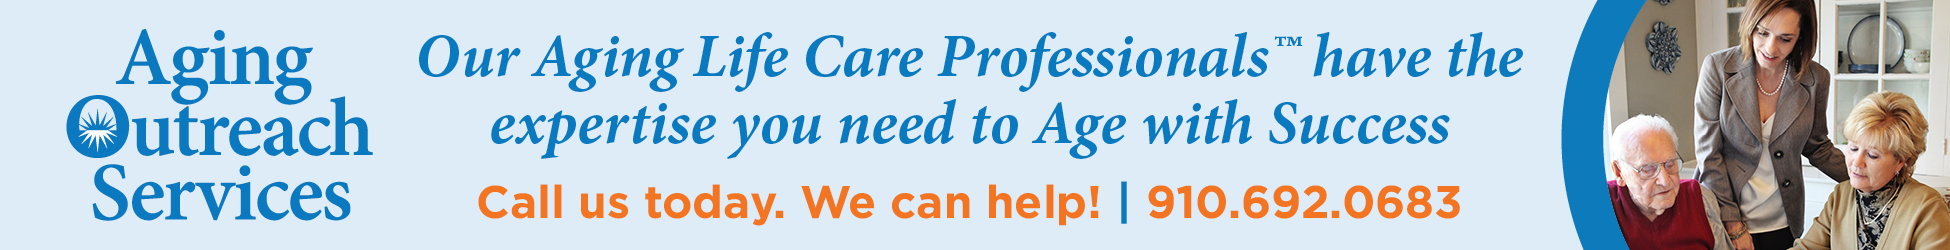 Aging Outreach Services